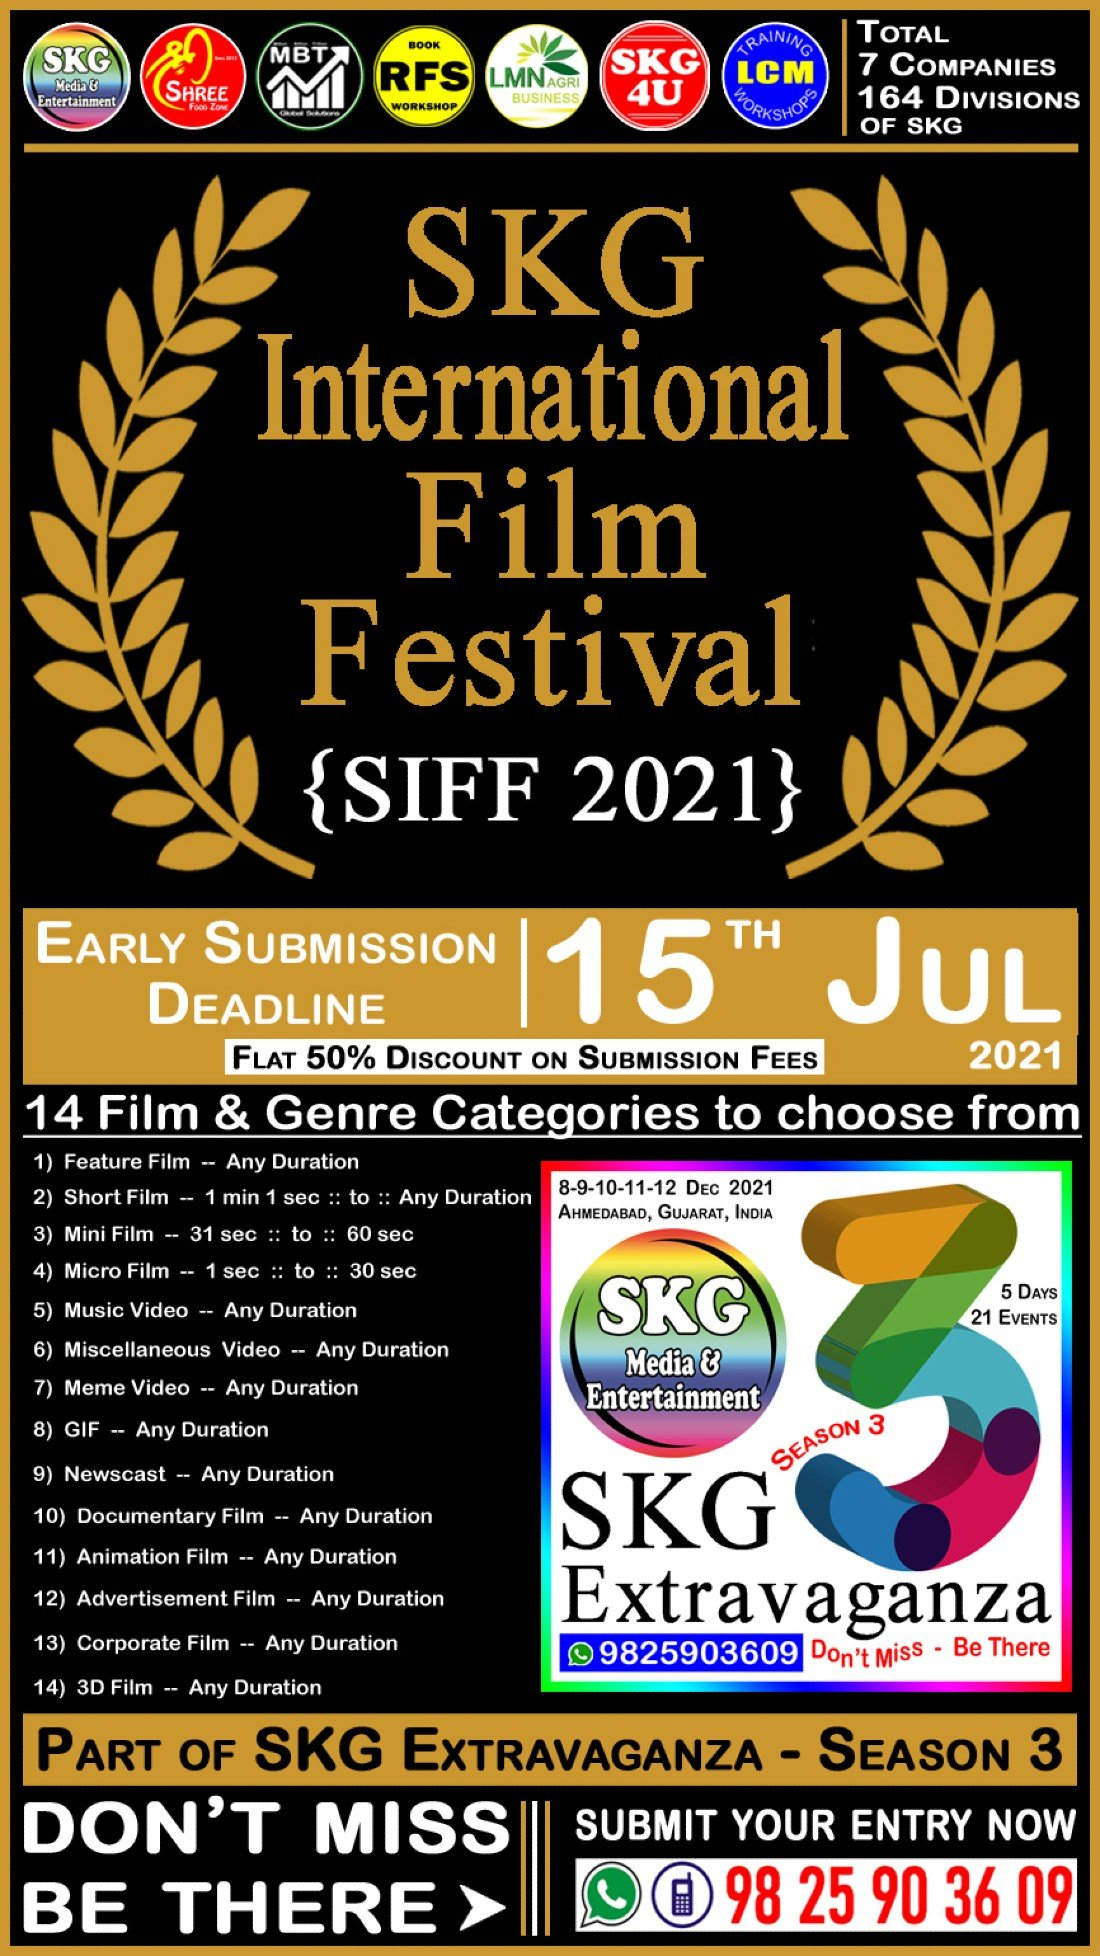 SIFF 2021 - SKG International Film Festival (( Event No 1 of 21 - SKG Extravaganza Season 3 )), 8 December